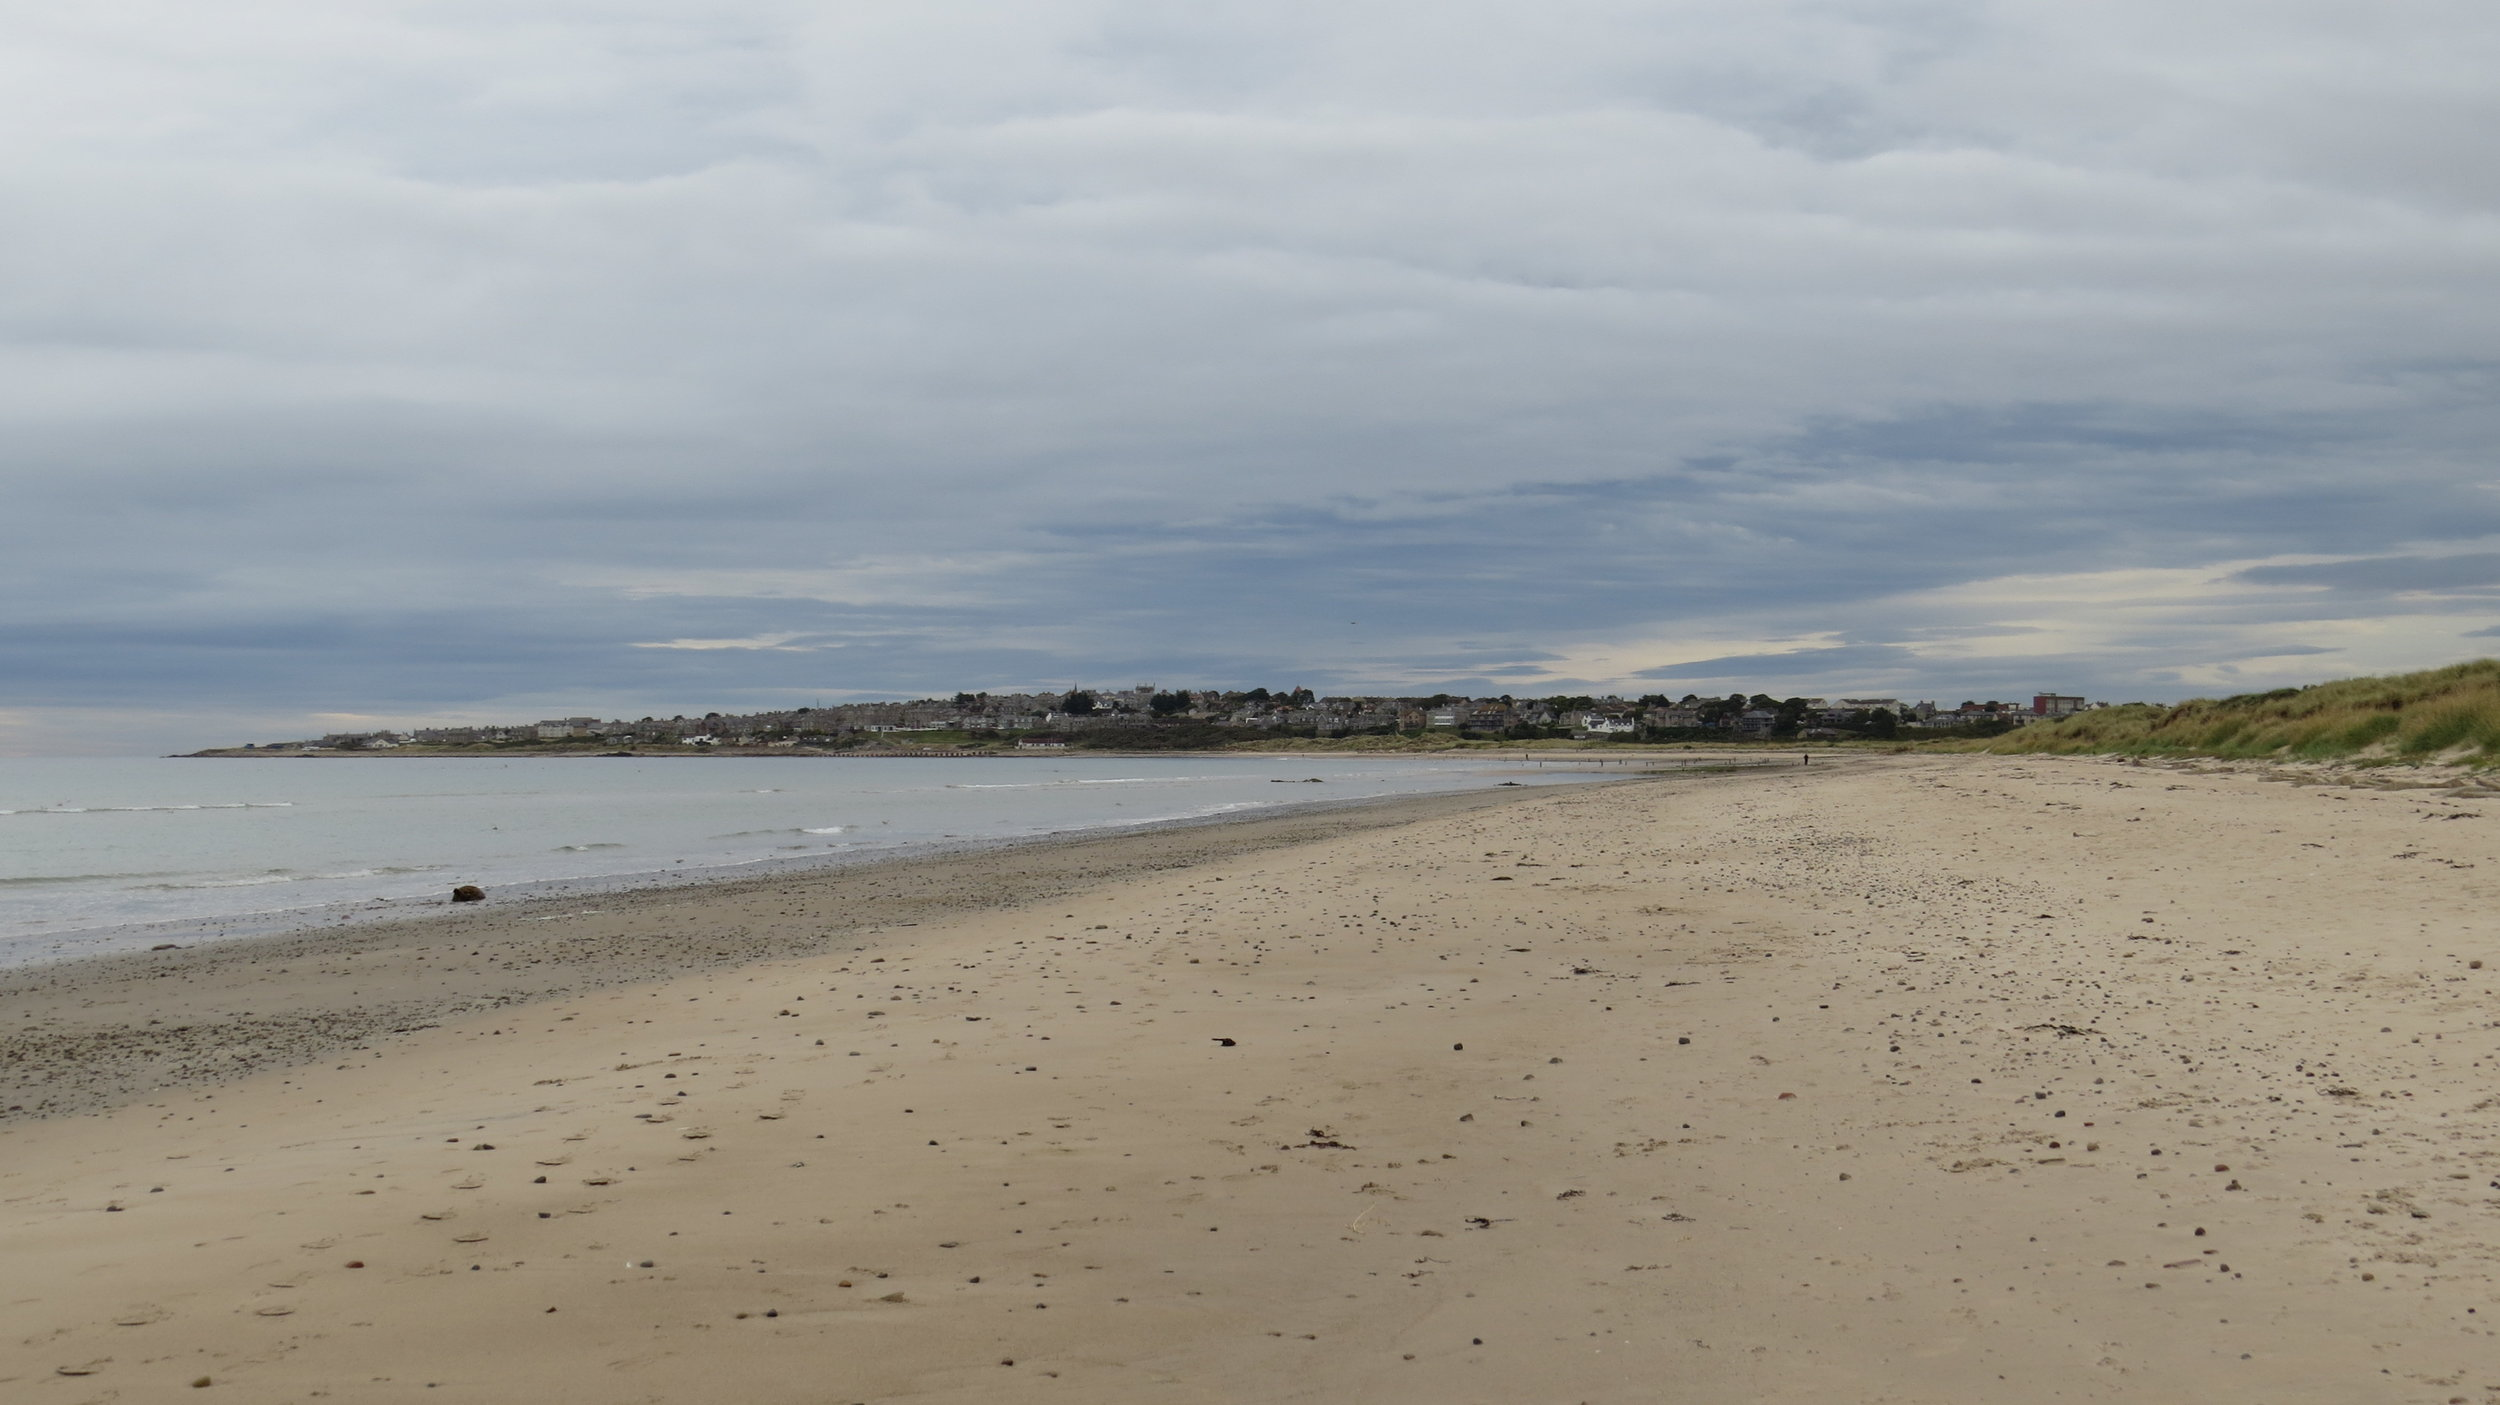 Approaching Lossiemouth